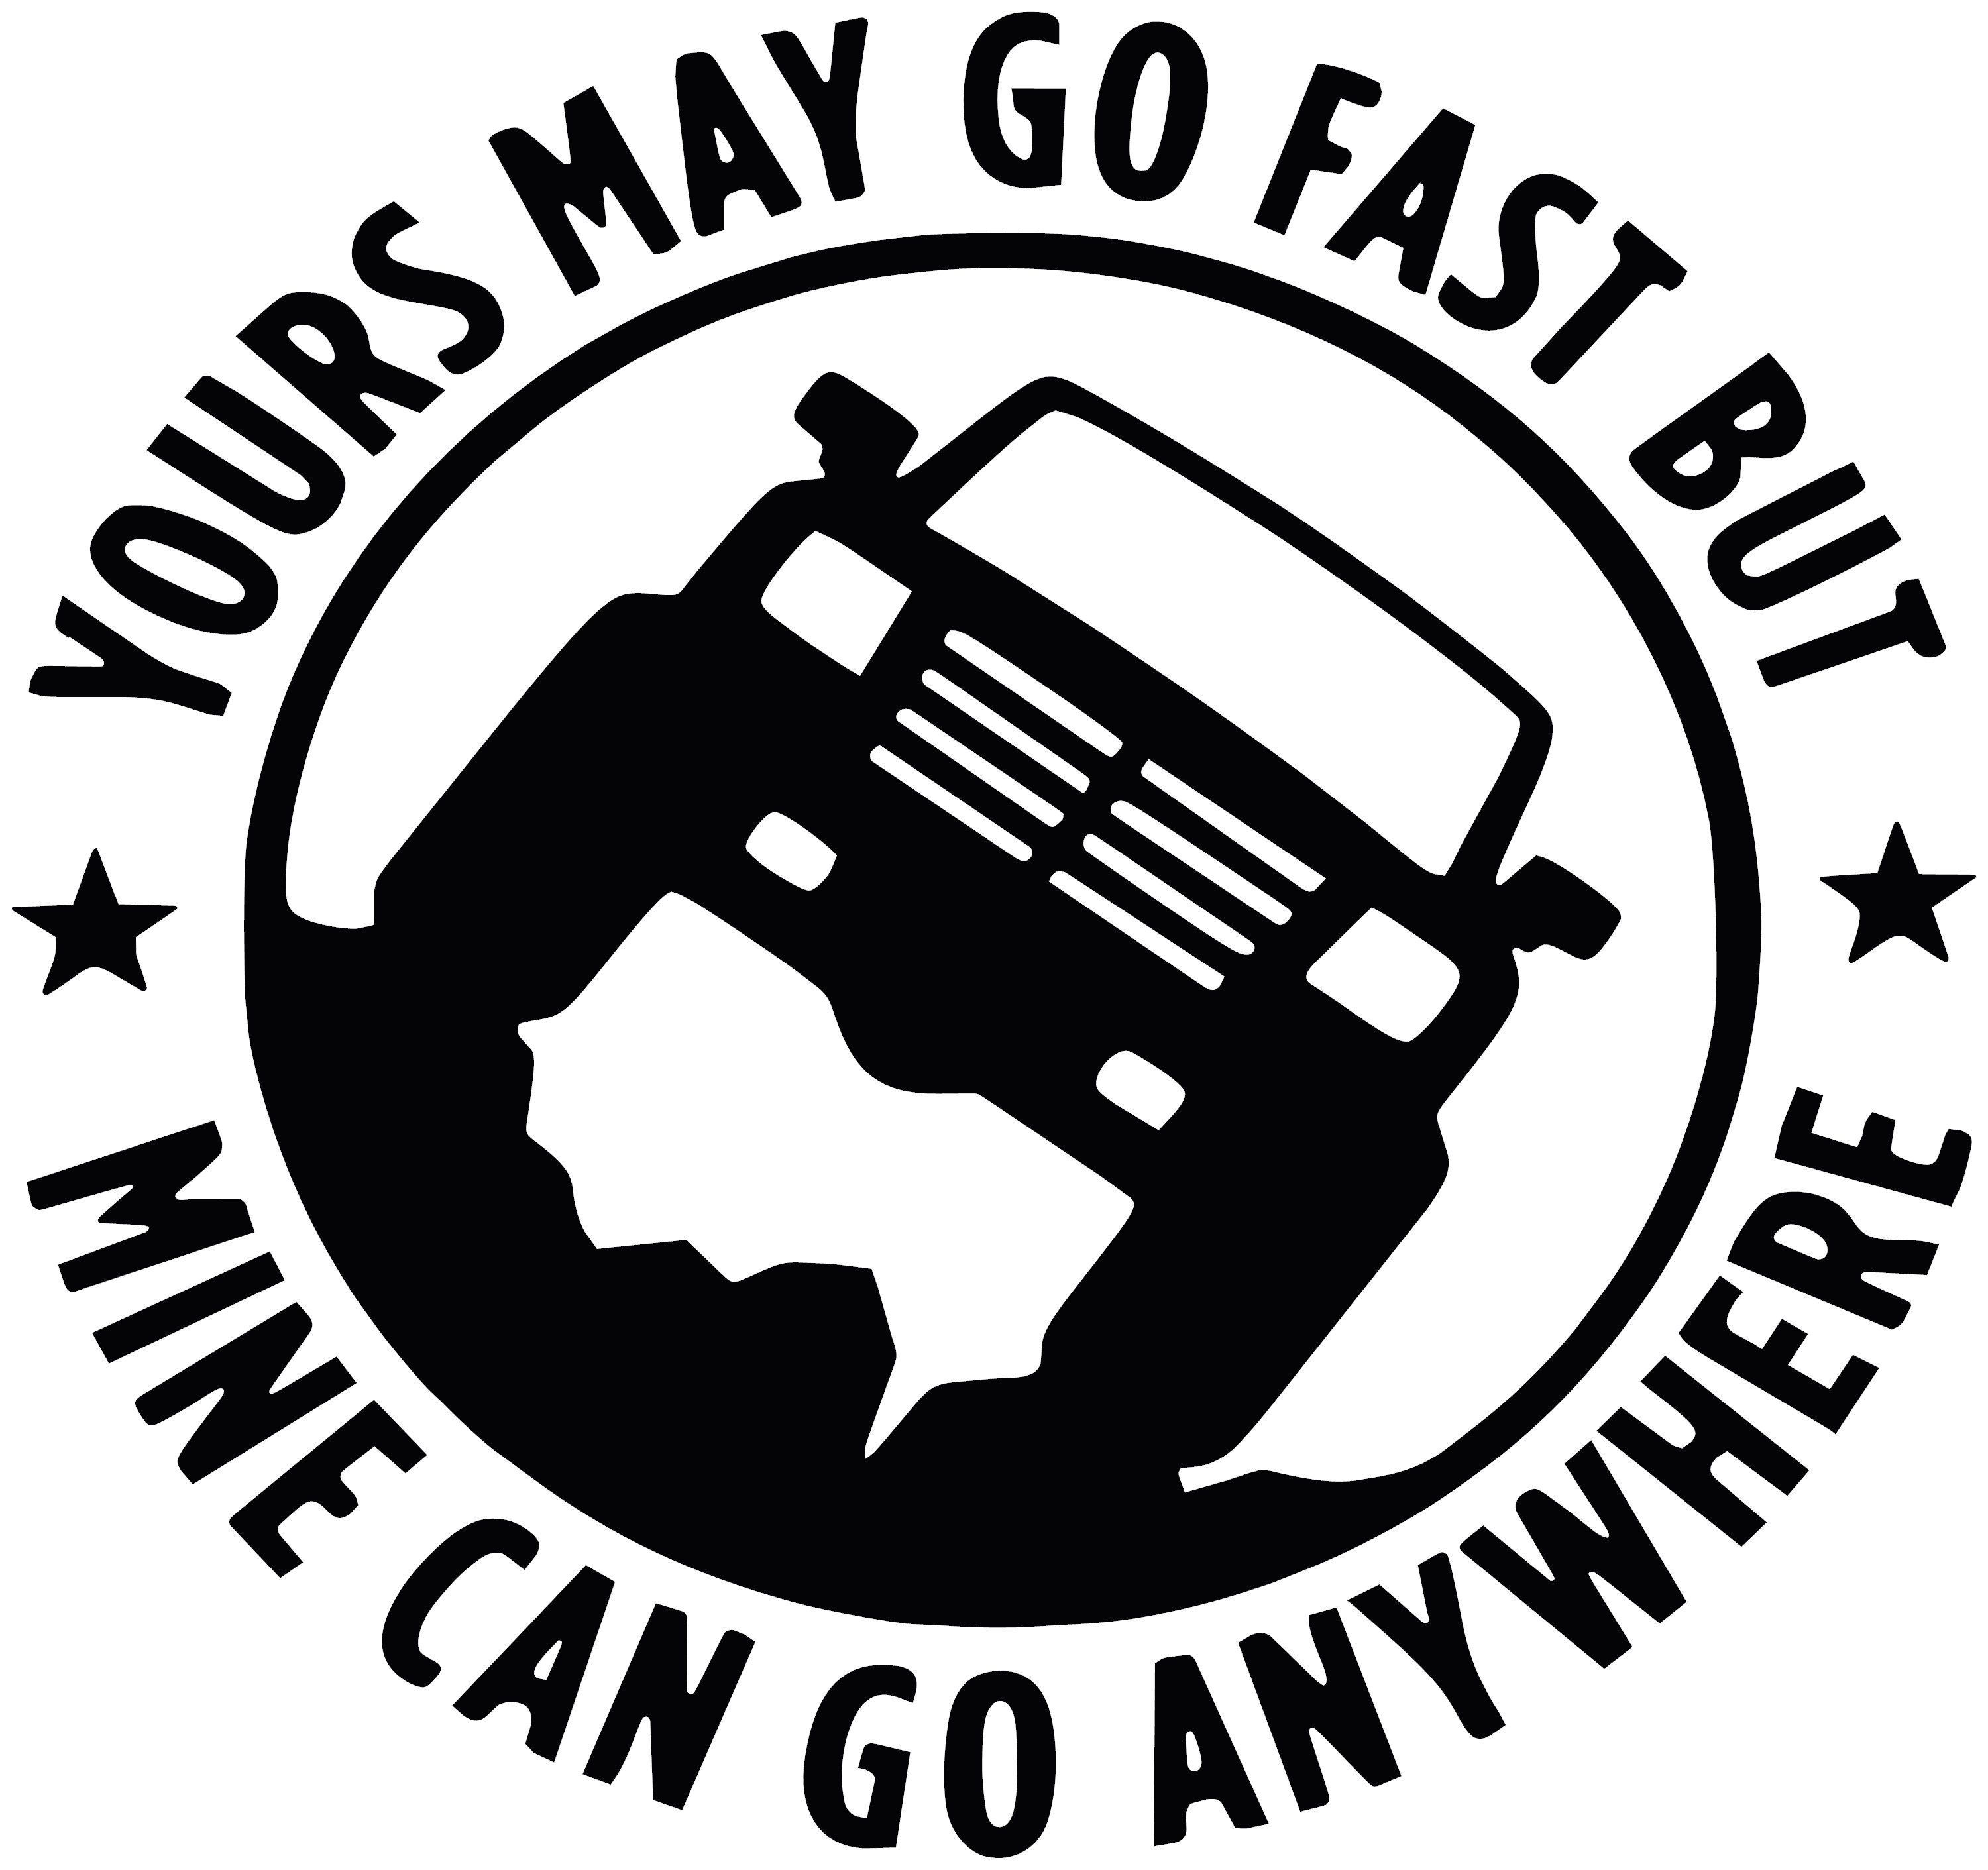 Jeep Decal Truck Decal 4x4 Bumper Sticker Jeep Life For Etsy Jeep Stickers Car Stickers Funny Funny Car Decals [ 2822 x 3000 Pixel ]